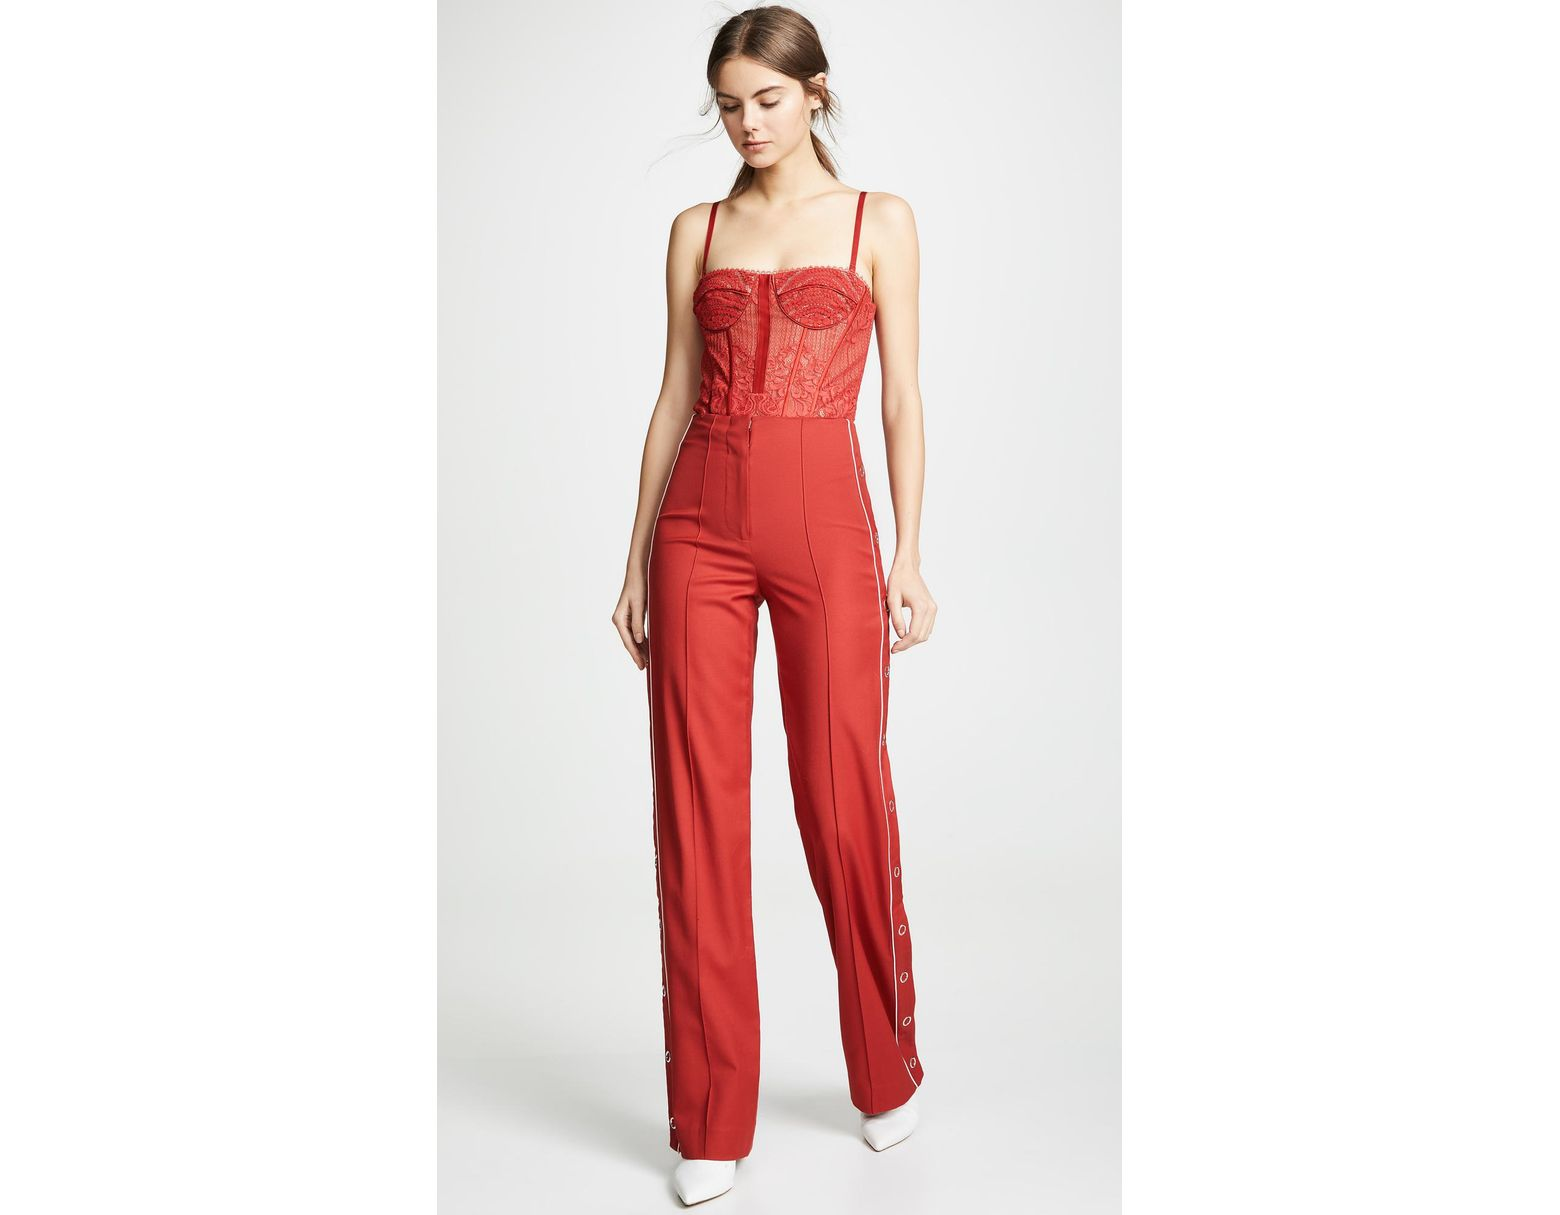 8f765527e Jonathan Simkhai Bustier Bodysuit Top in Red - Save 46% - Lyst